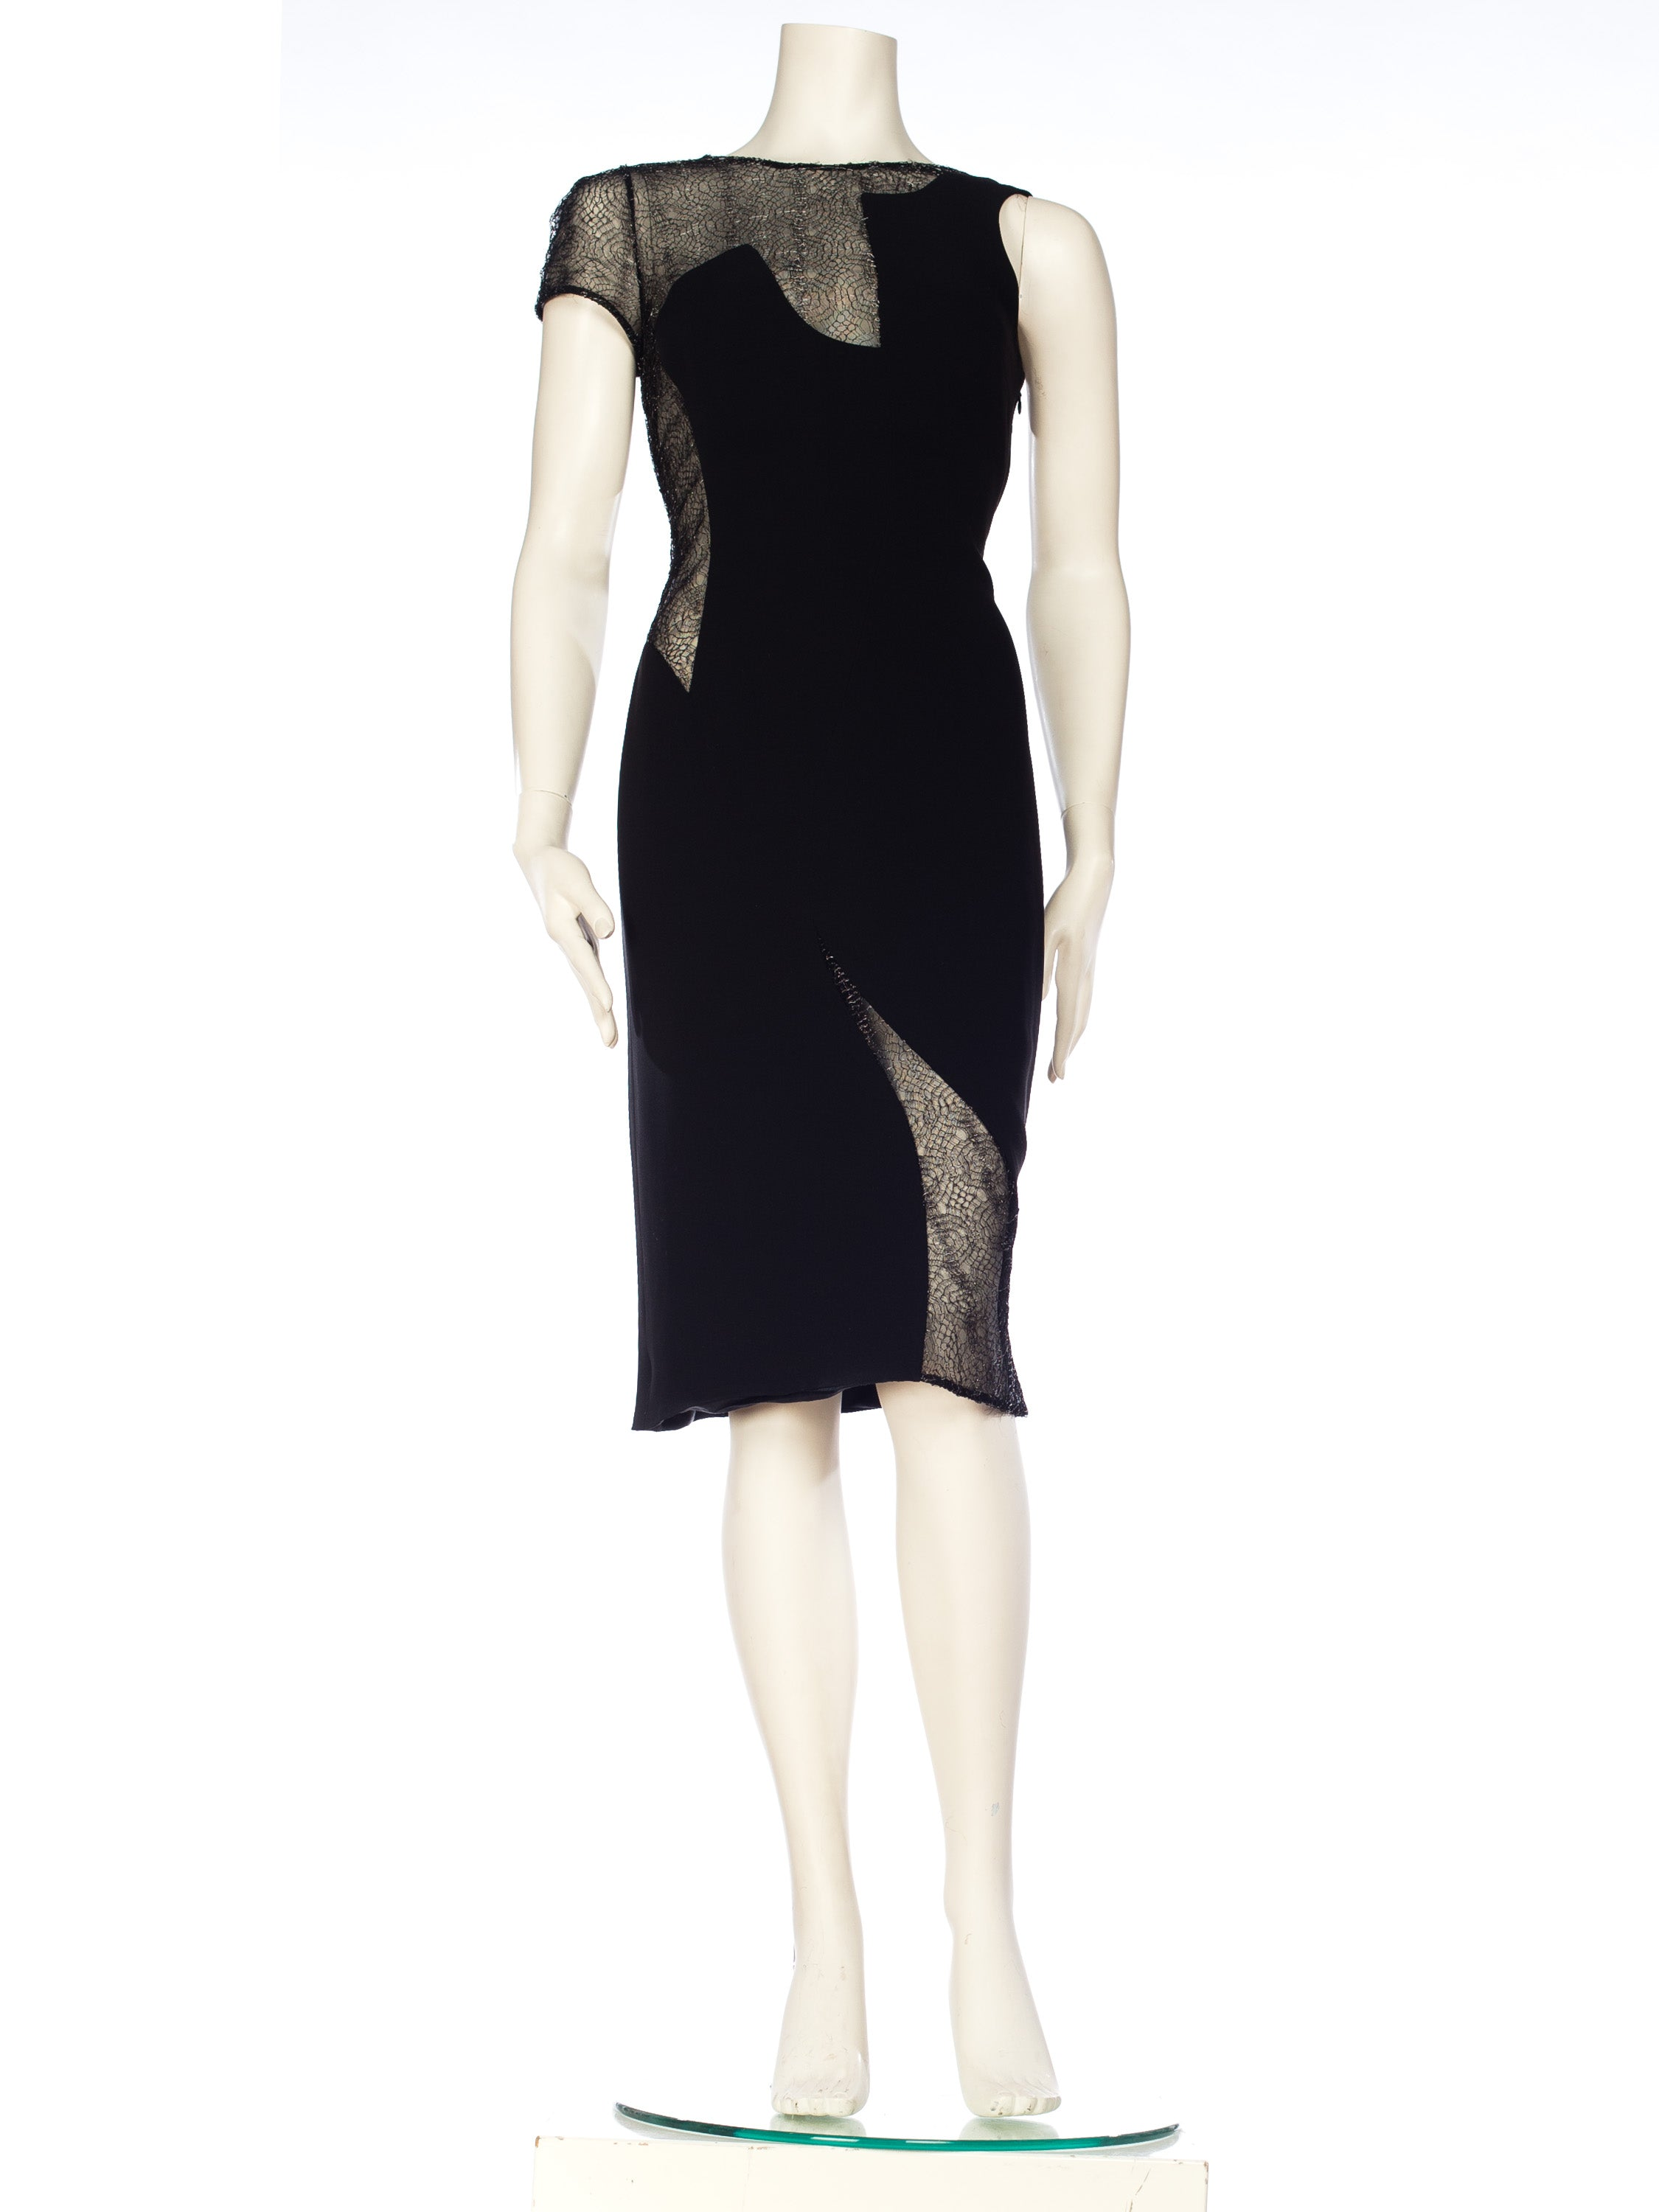 1990S GIANNI VERSACE Black Silk Deconstructed Sexy Modernist Cocktail Dress With Sheer Silver Metallic Lace